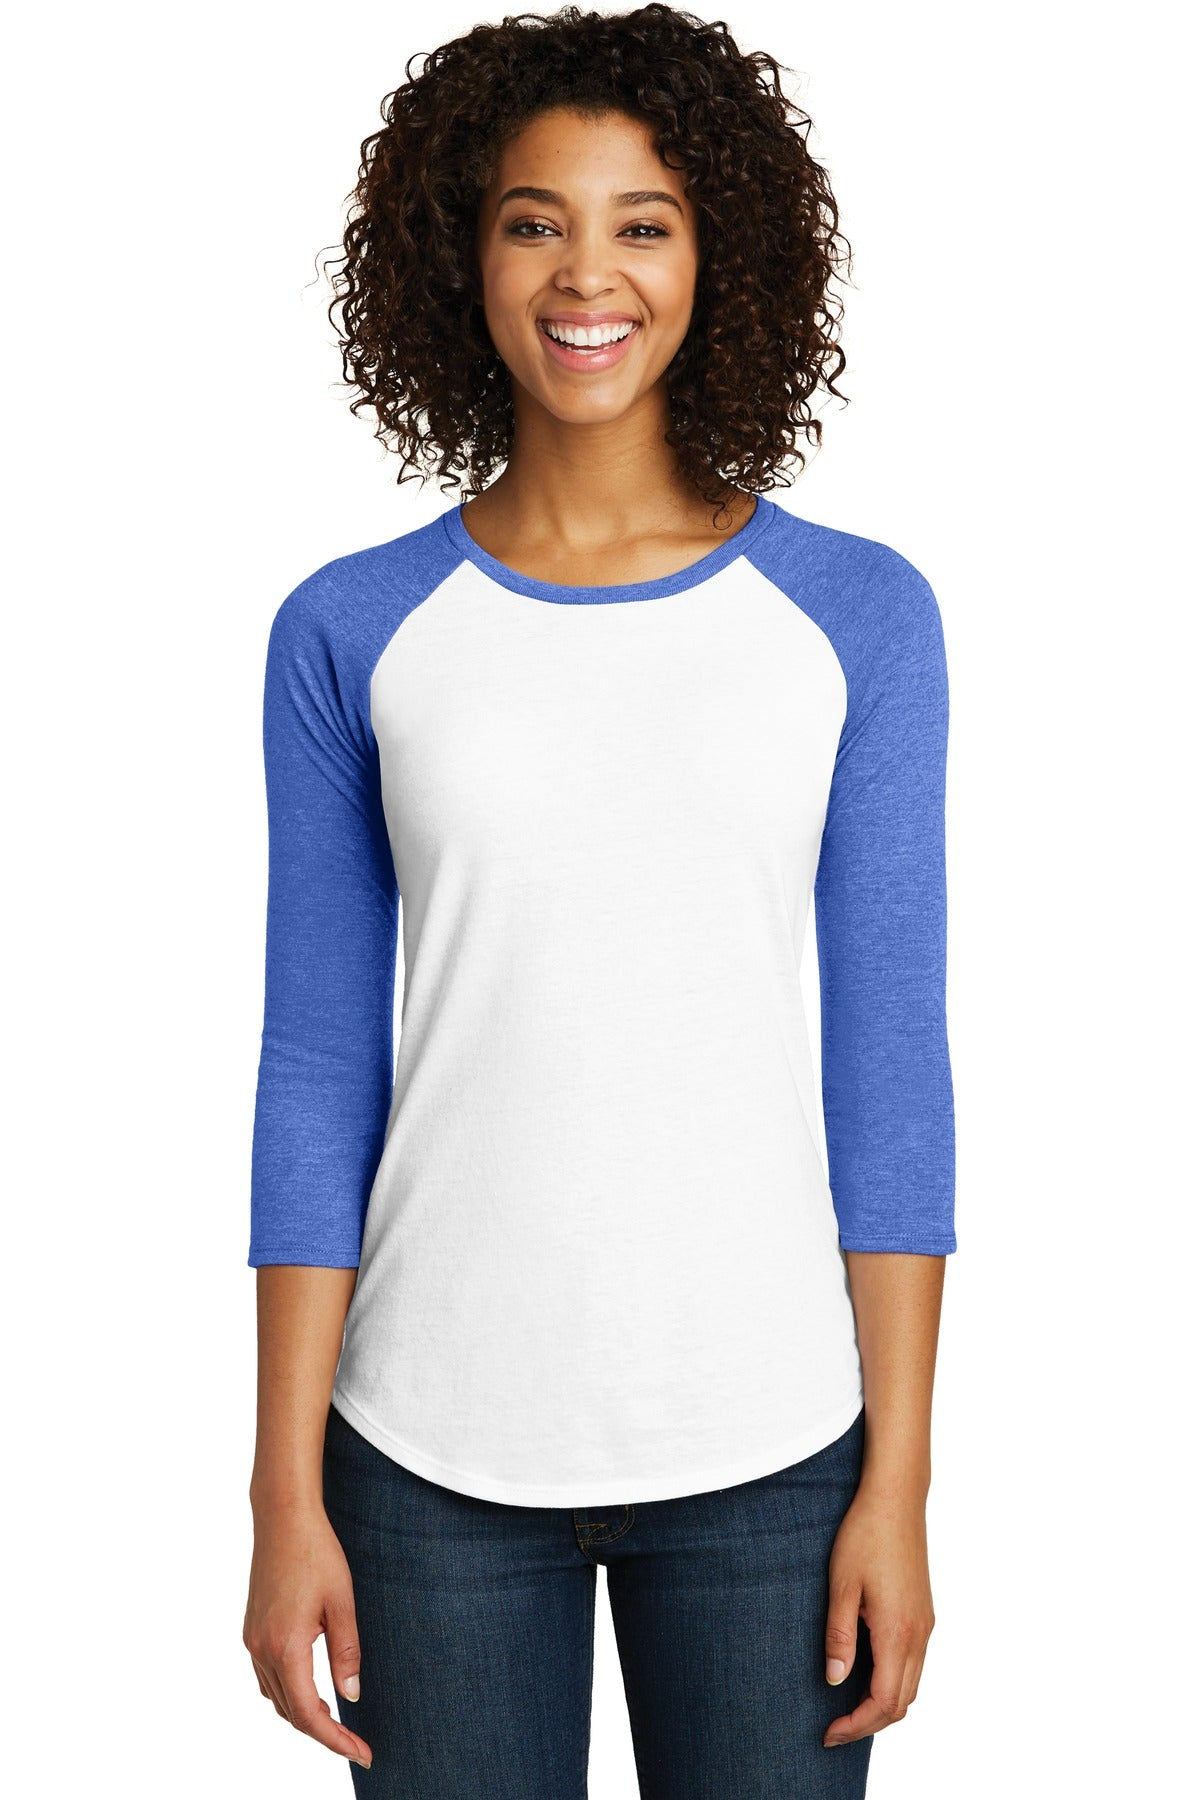 District® Women's Fitted Very Important Tee® 3/4-Sleeve Raglan. DT6211 - Aspire Zone